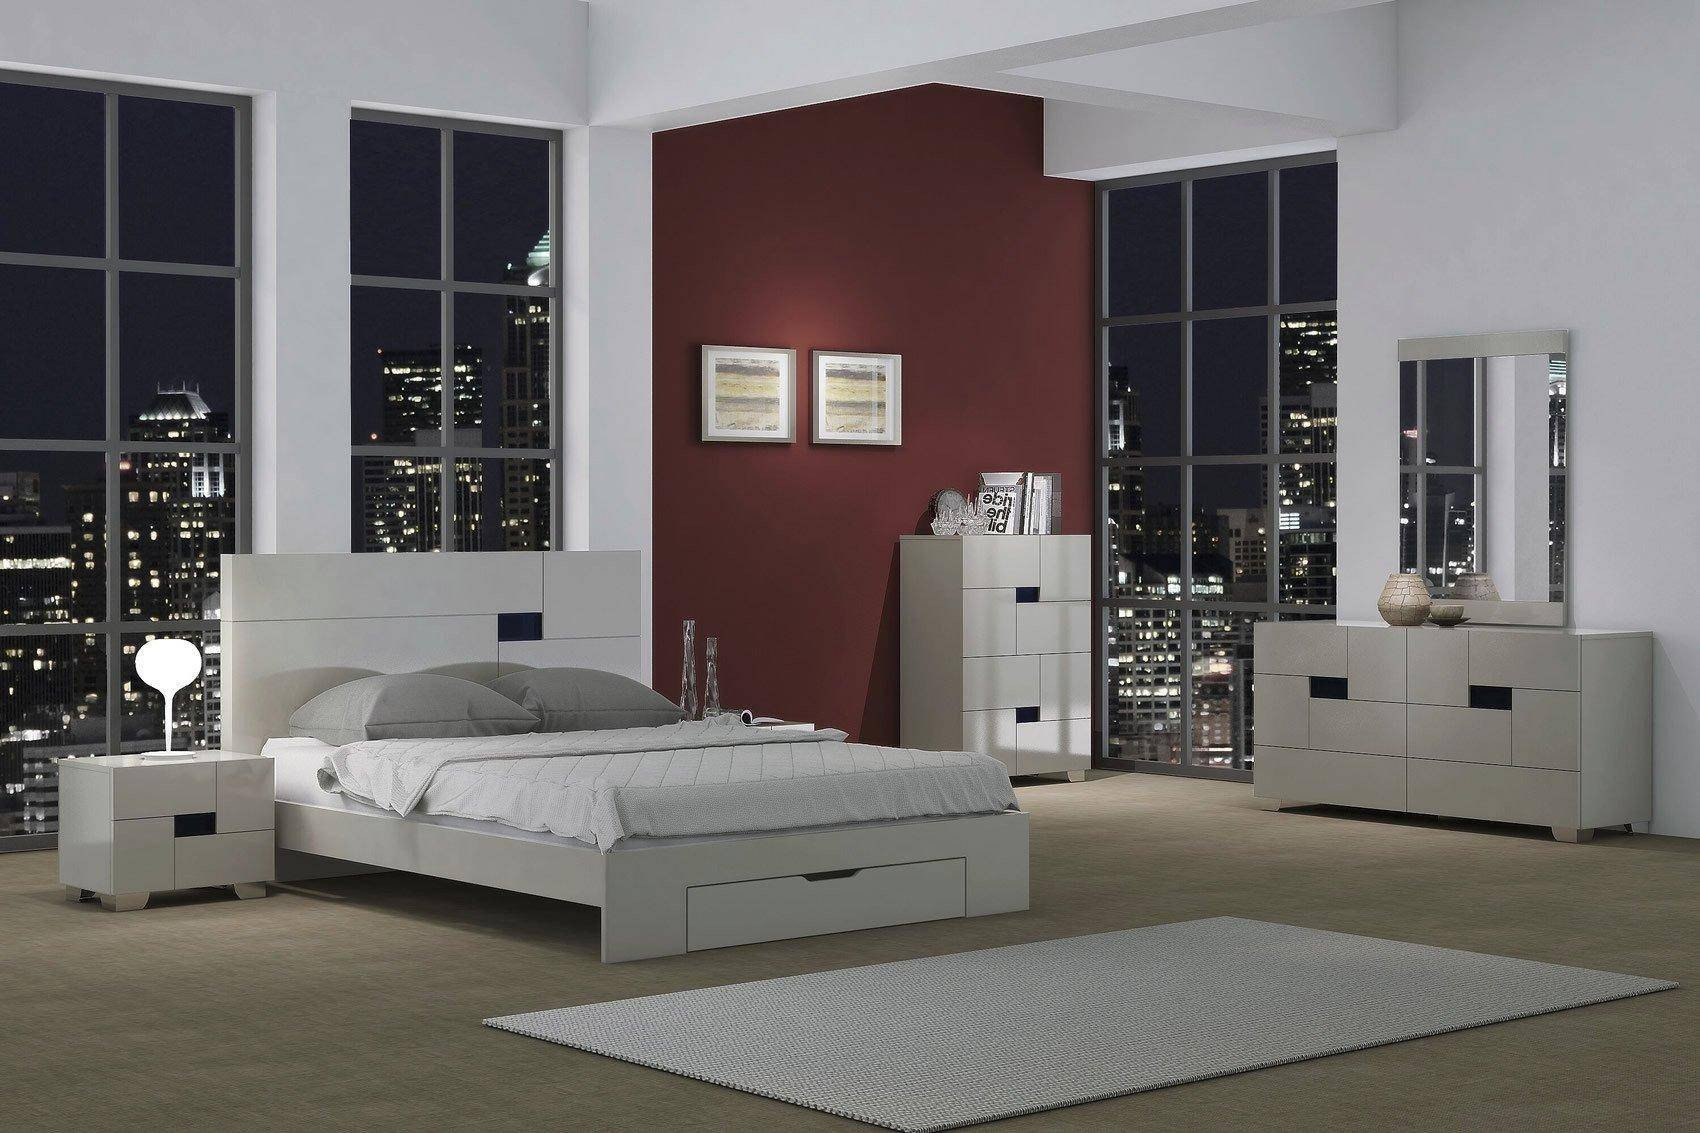 Low Price Bedroom Set Unique Contemporary Light Gray Lacquer Storage Queen Bedroom Set